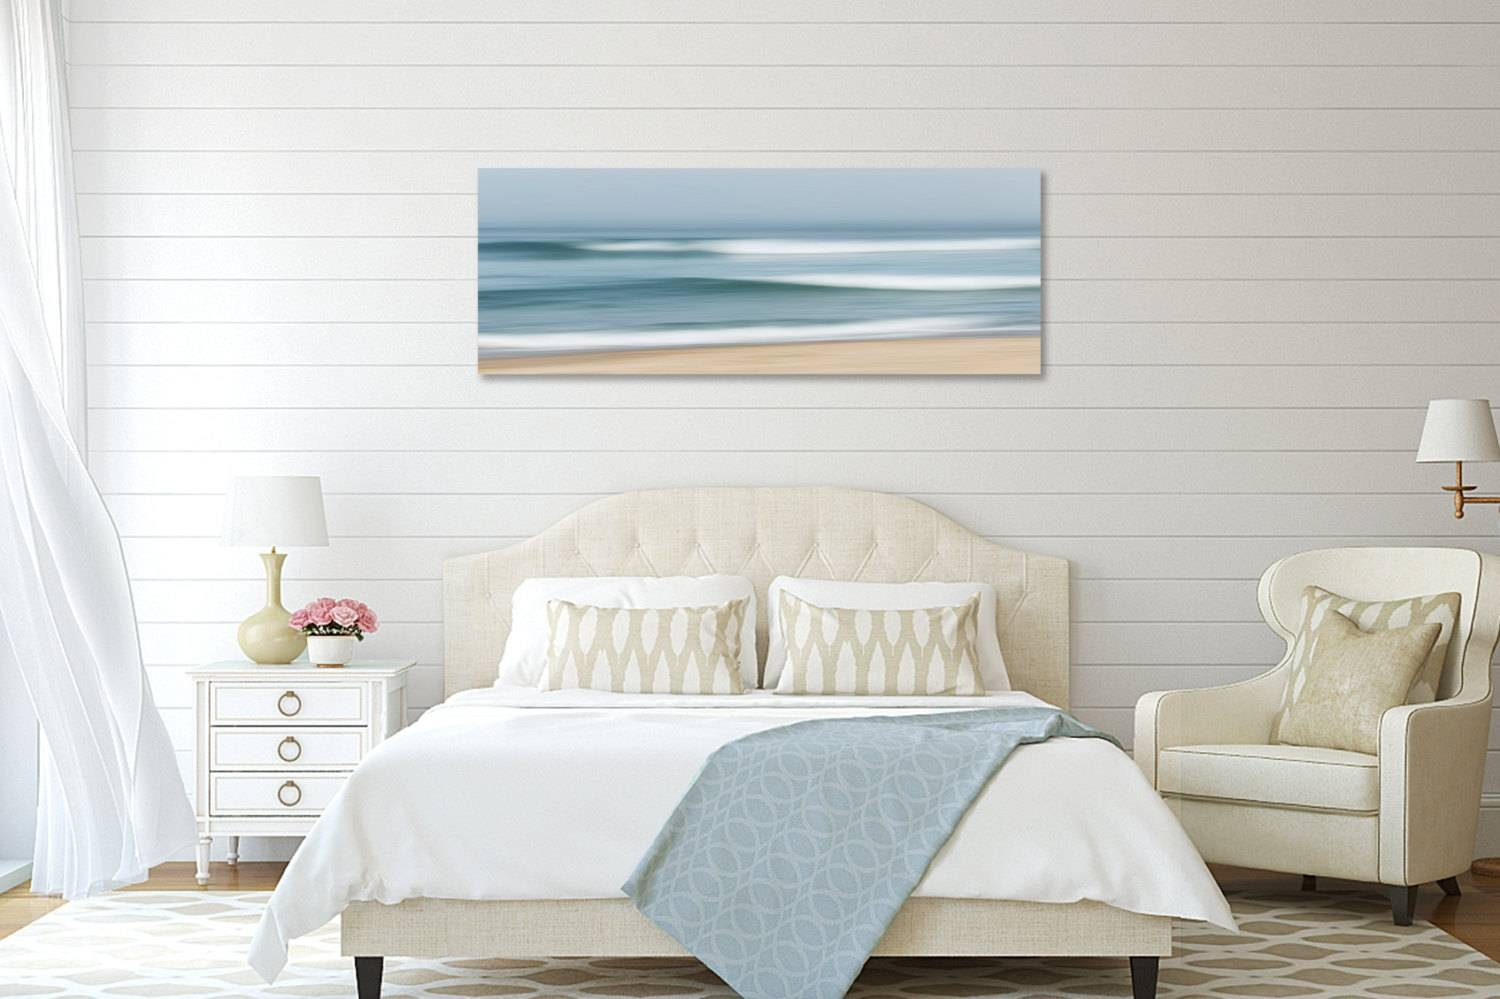 Coastal Wall Decor Large Abstract Beach Canvas Wall Art With Regard To Newest Coastal Wall Art Decor (View 7 of 20)